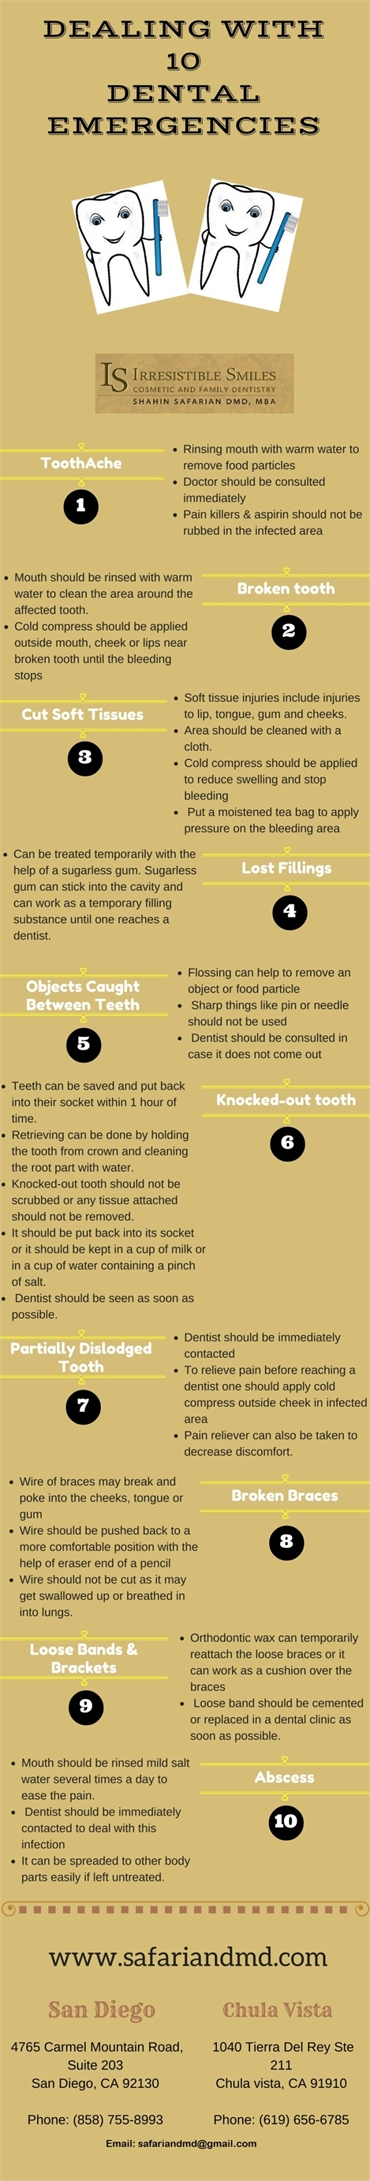 10 Dental Emergencies